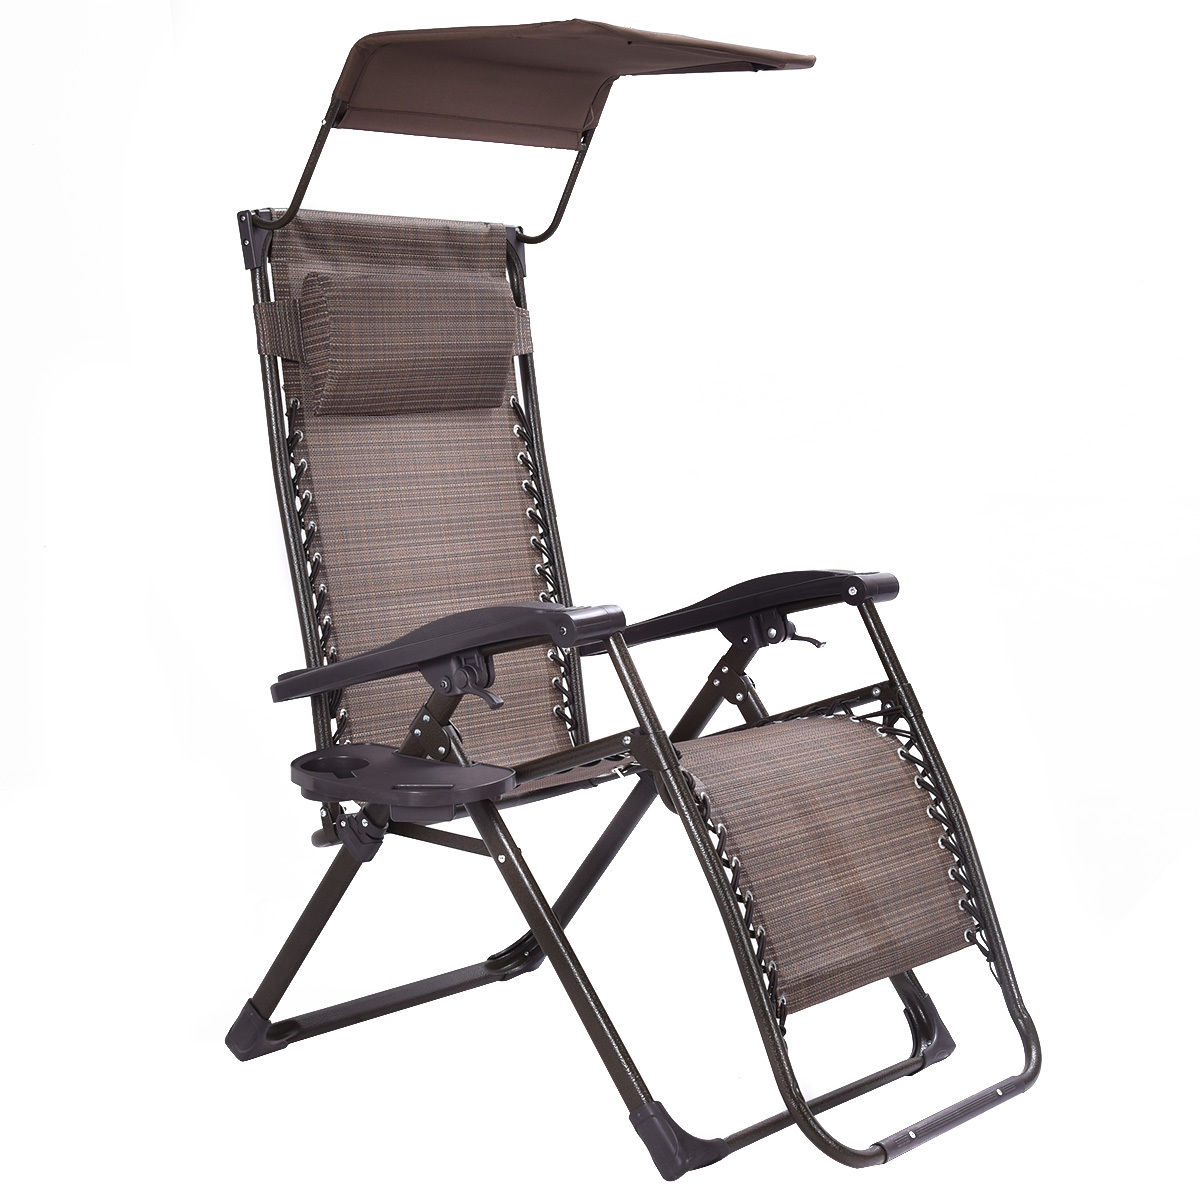 Giantex Foldable Zero Gravity Chair Lounge Patio Garden Outdoor Yard Recliner with Sunshade +Tray Beach Chairs OP3007 carbonized wood outdoor balcony living room lounge chair recliner chairs rocking happy old